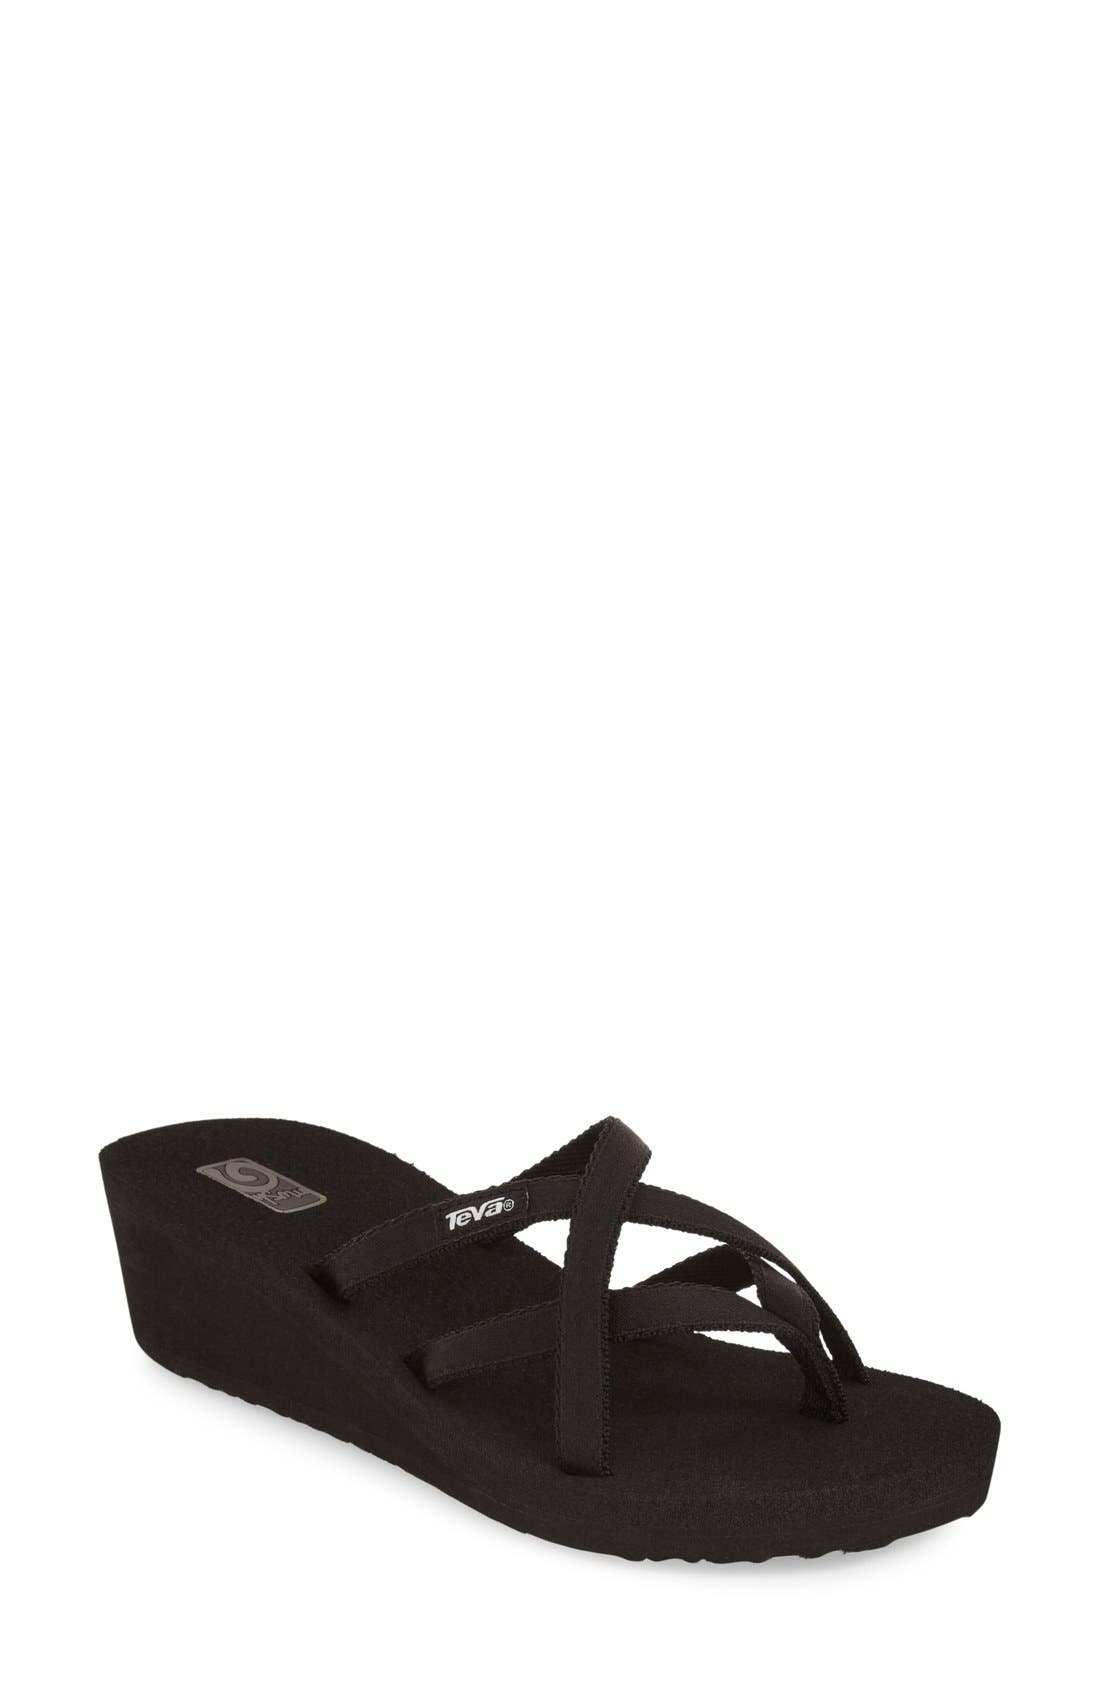 'Mandalyn' Wedge Sandal,                             Main thumbnail 1, color,                             BLACK